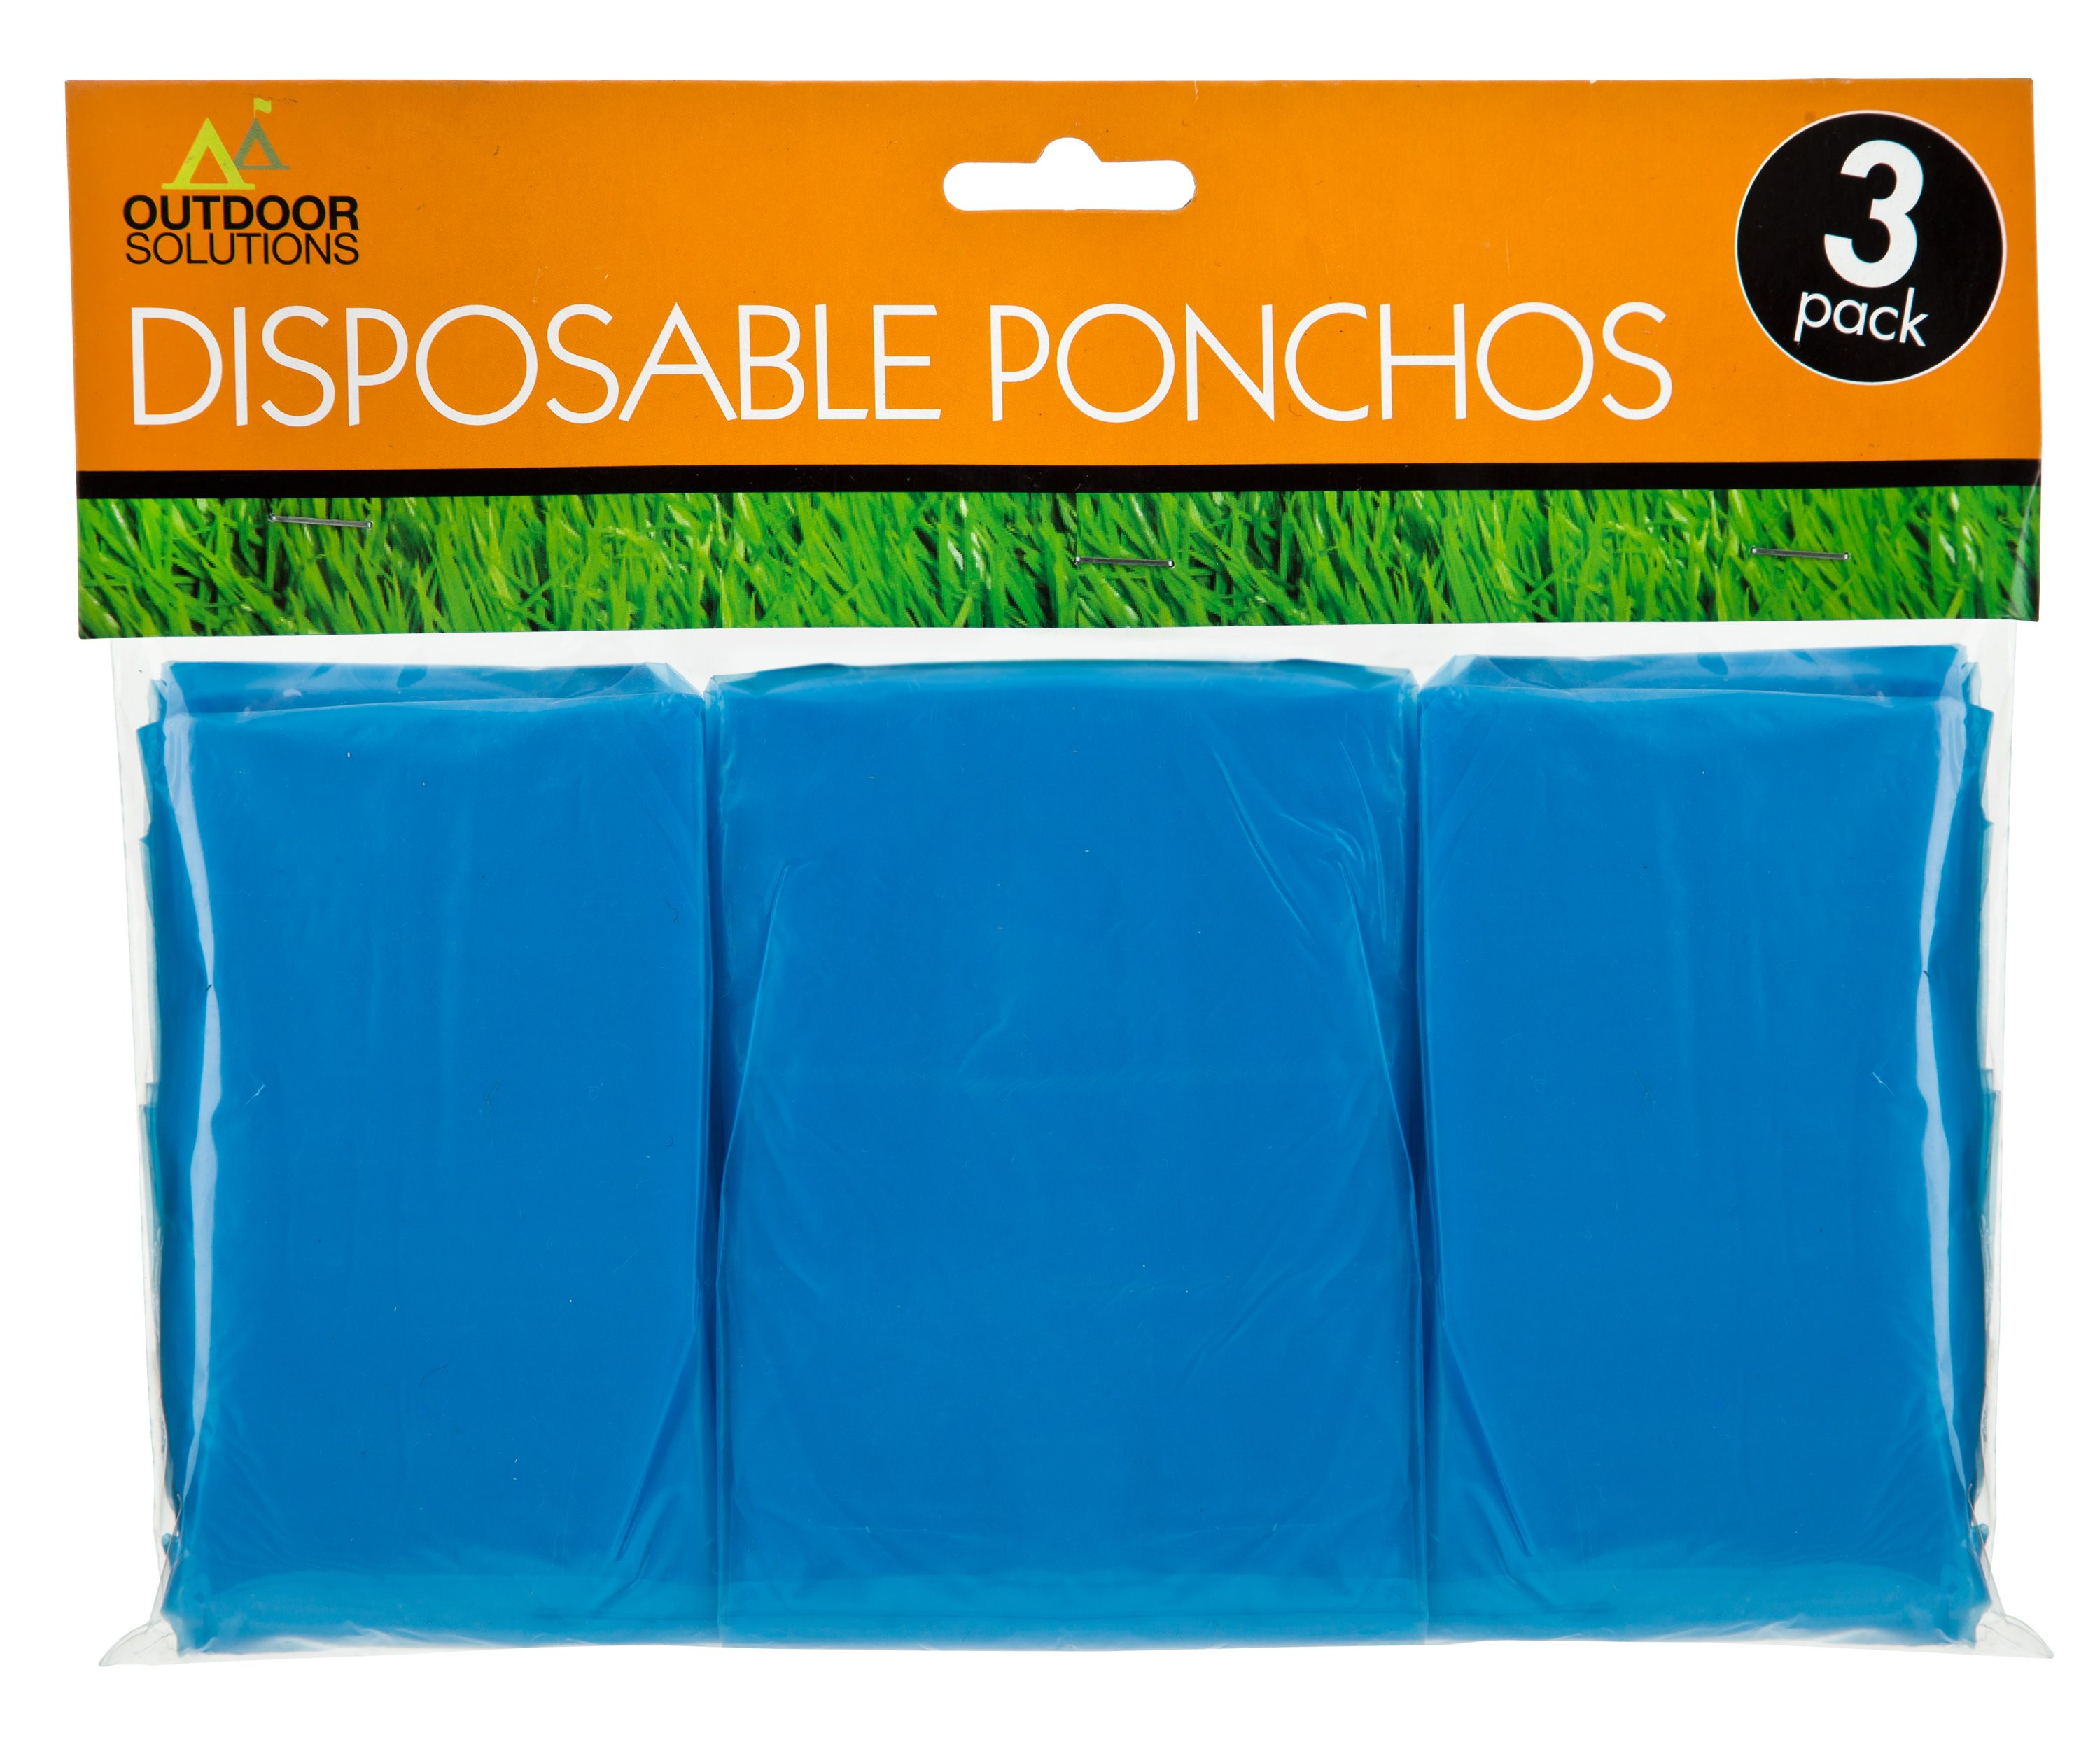 Pack of three disposable ponchos from Poundland